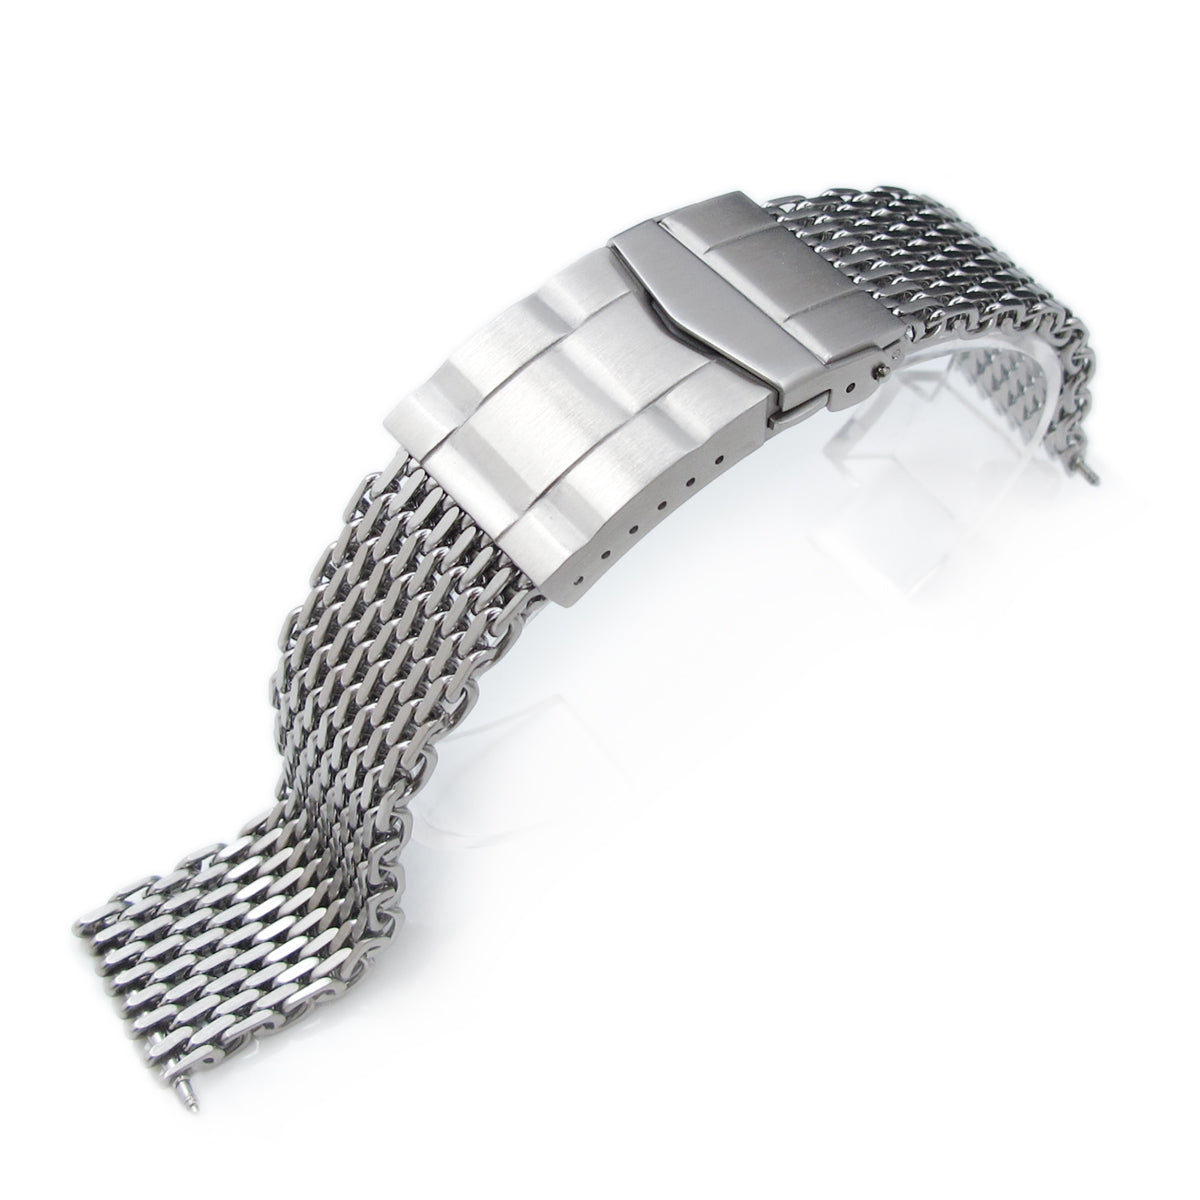 19mm 20mm Ploprof 316 Reform Stainless Steel SHARK Mesh Watch Band SUB Diver Clasp Brushed Strapcode Watch Bands